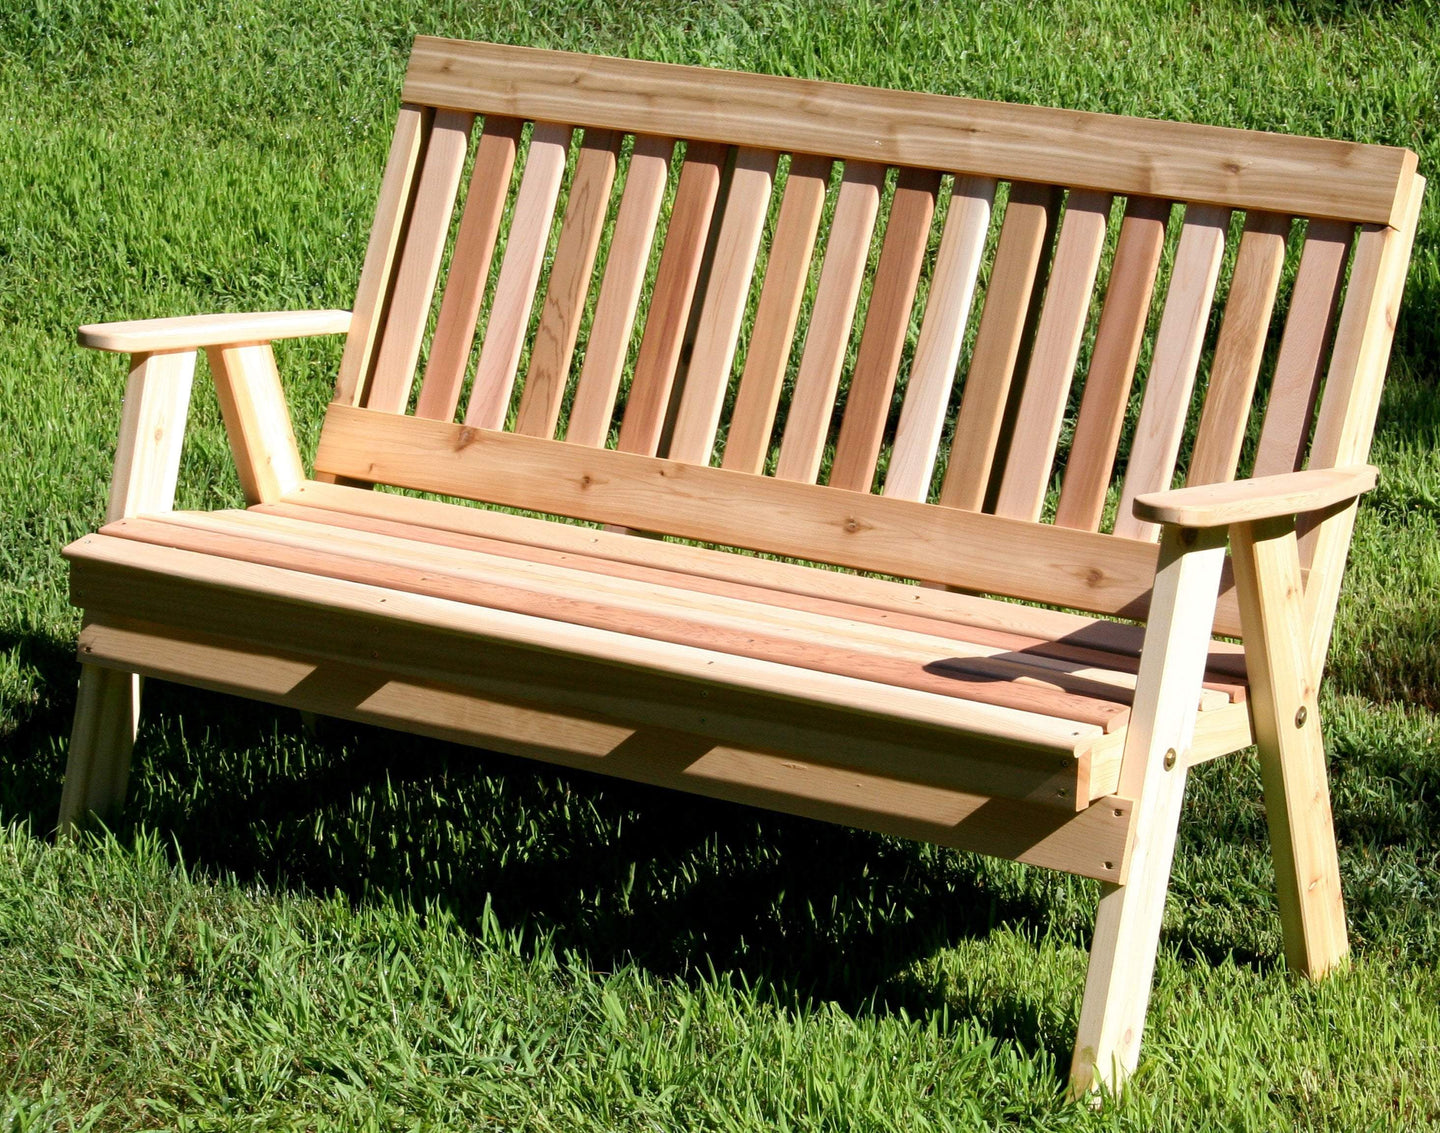 Creekvine Designs Patio Furniture Creekvine Designs Cedar Countryside Garden Bench